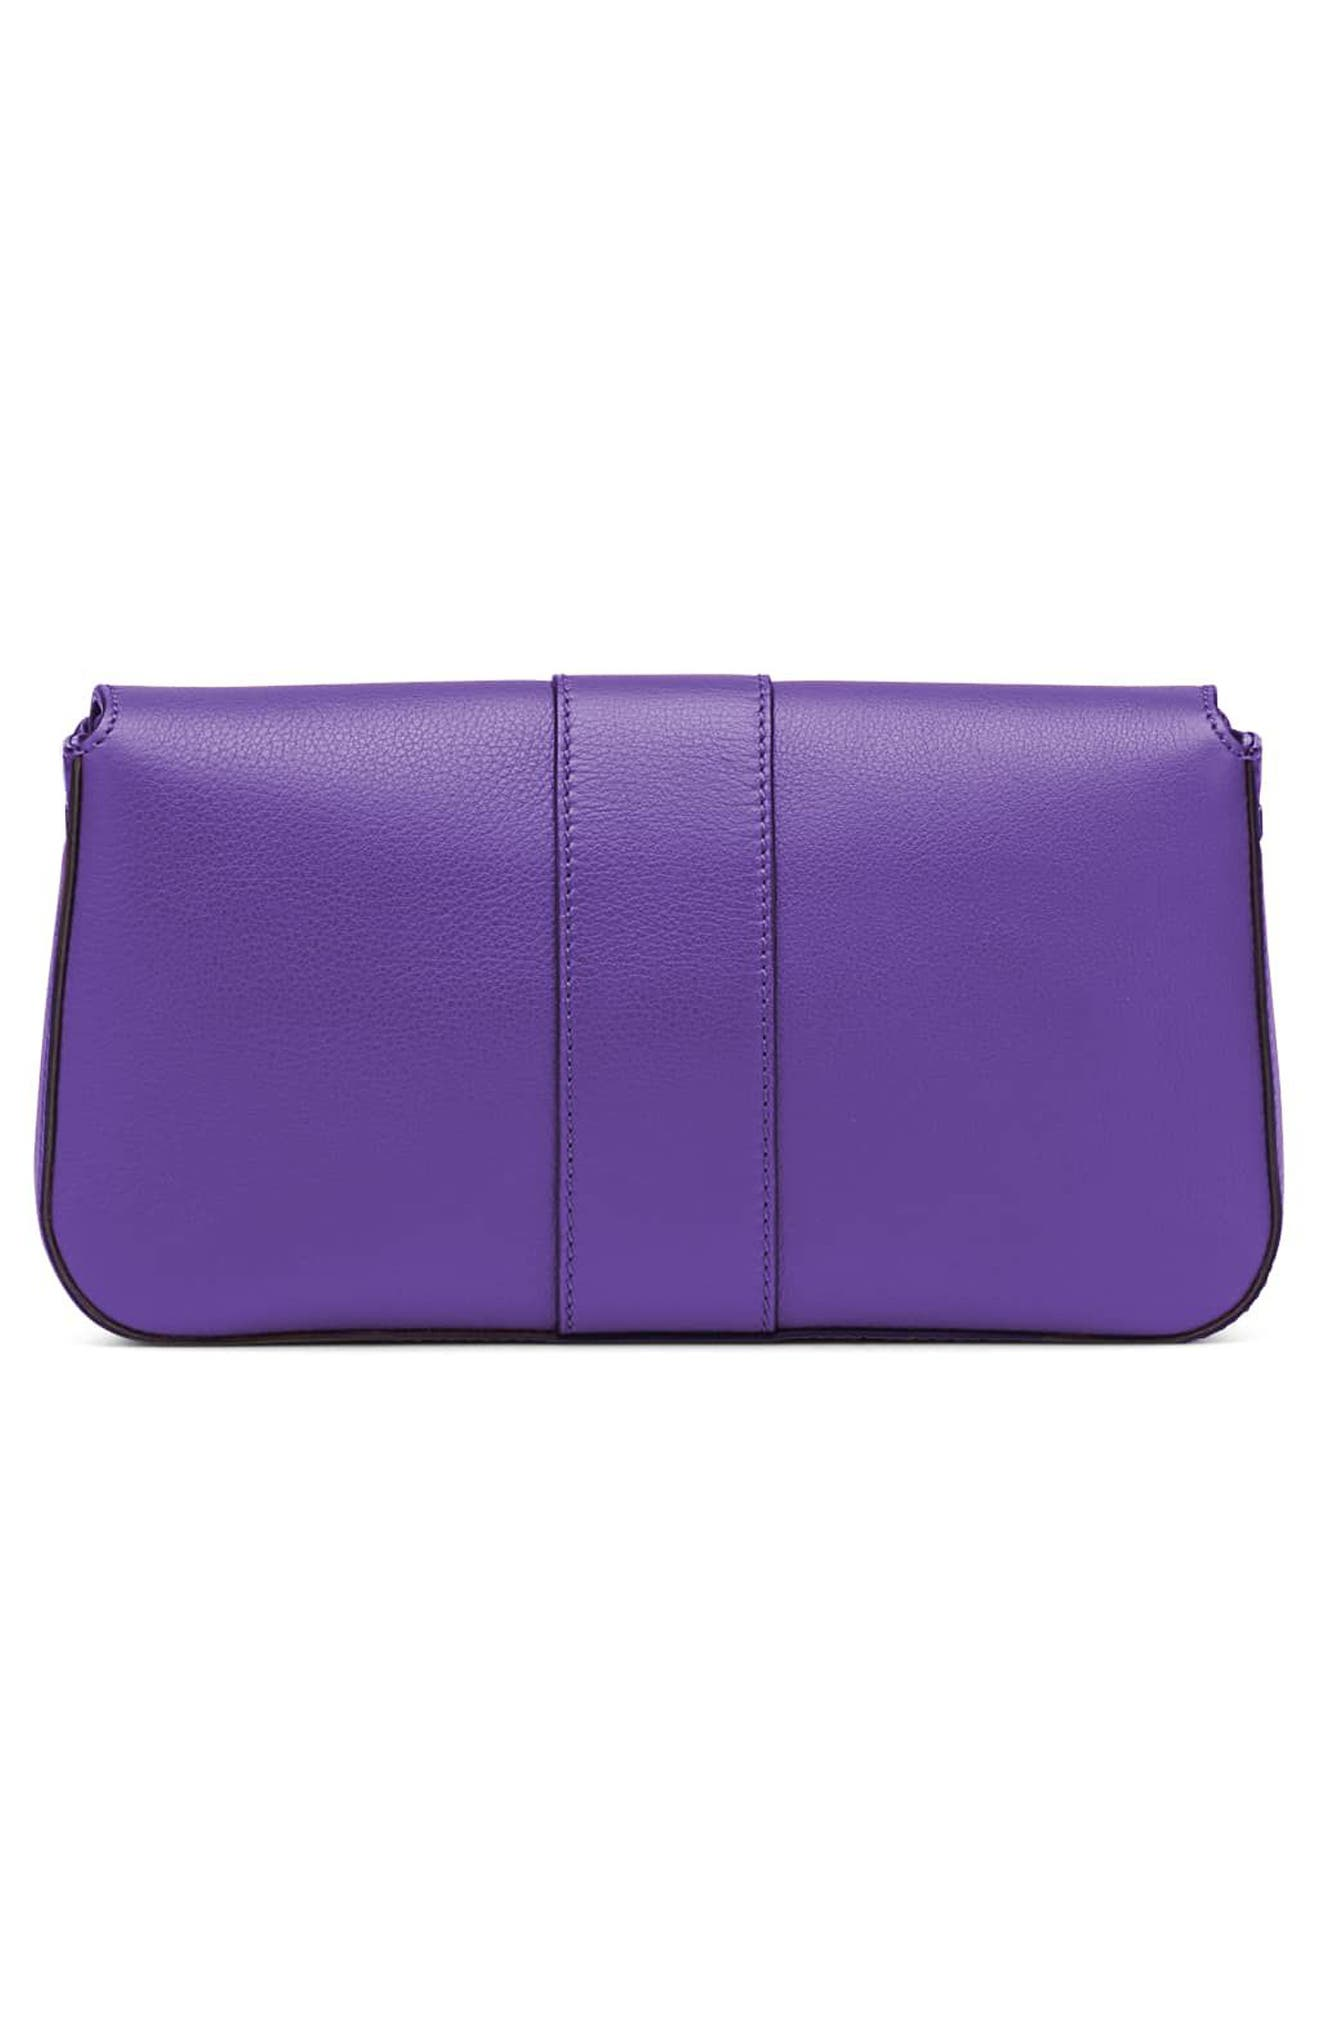 'Dolce' Calfskin Leather Baguette,                             Alternate thumbnail 3, color,                             Purple Rain/ Ruthenium